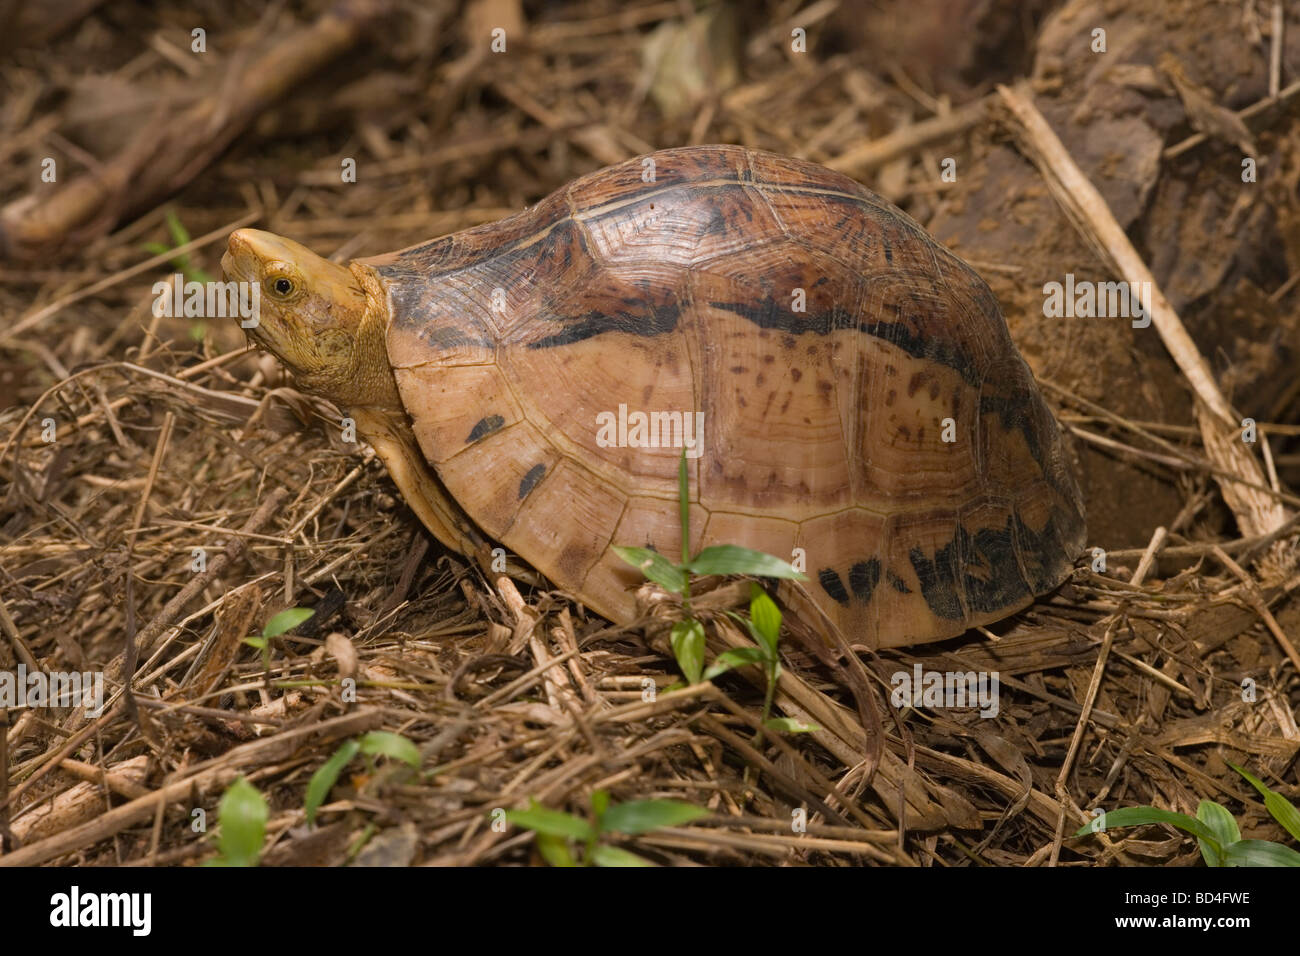 Indochinese Flowerback Box Turtle (Cuora galbinifrons). Head emerging from between upper and lowered shell, or plastron, Stock Photo